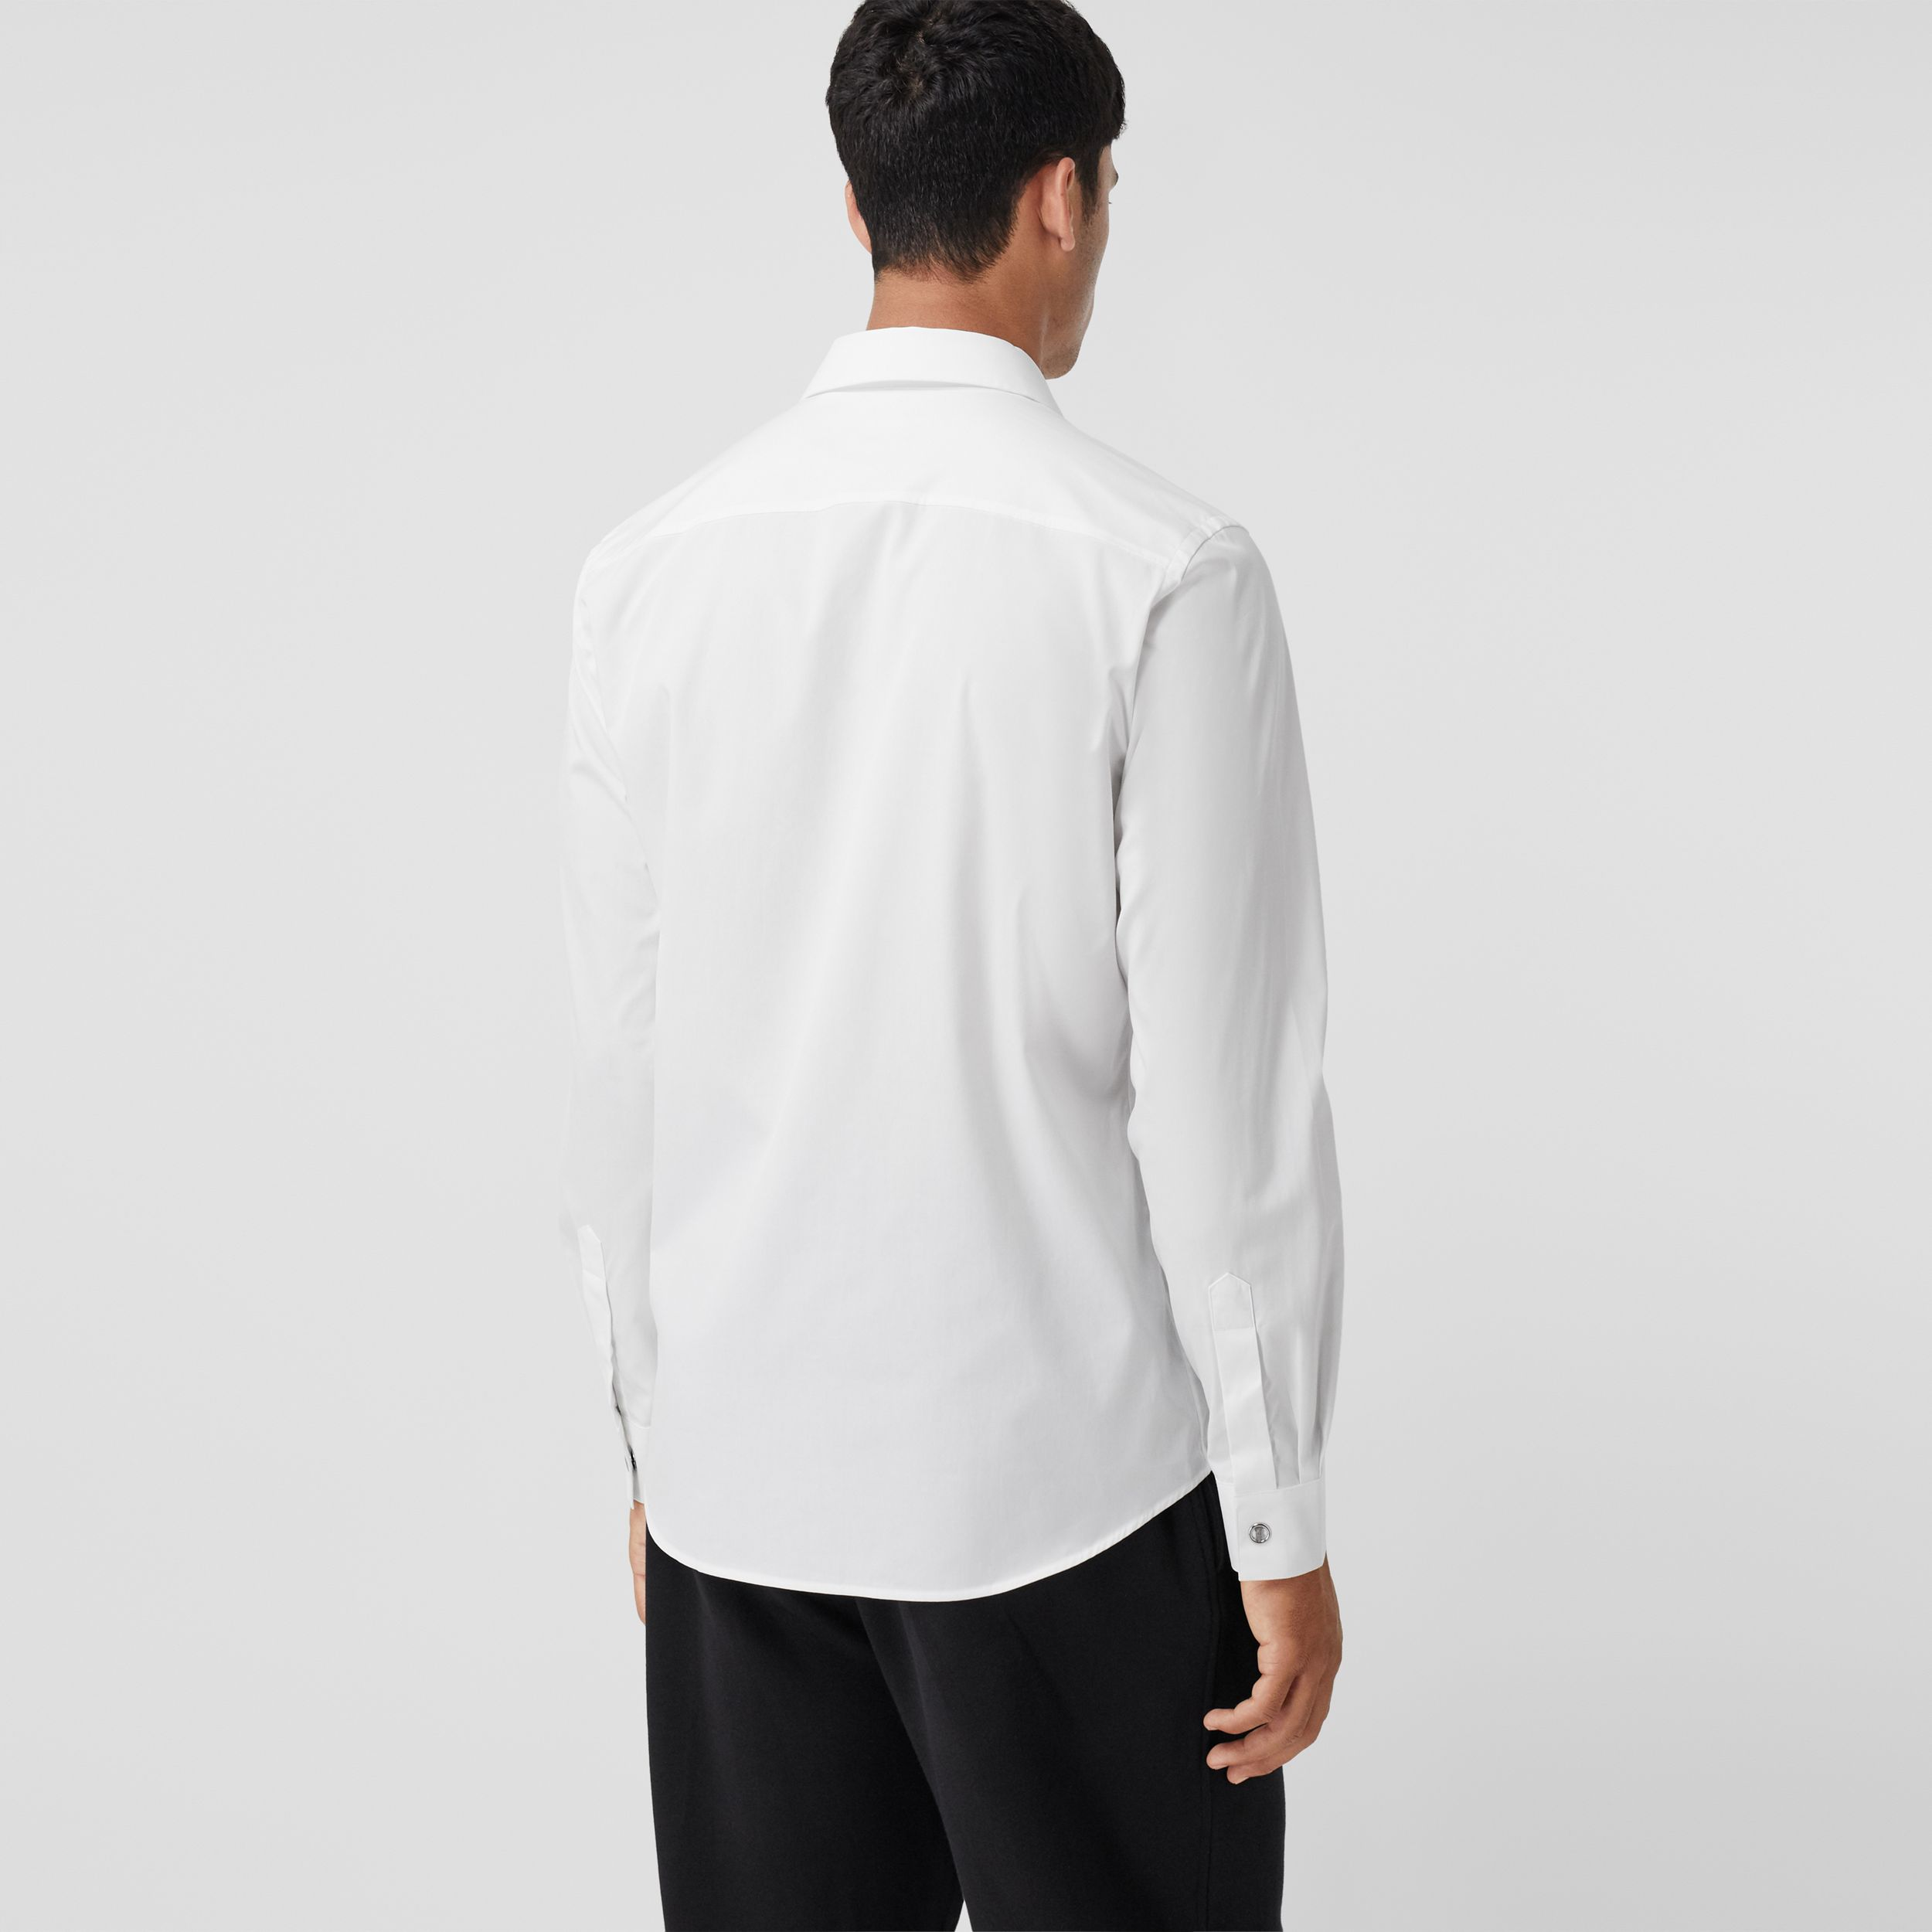 Monogram Motif Stretch Cotton Shirt in White - Men | Burberry - 3